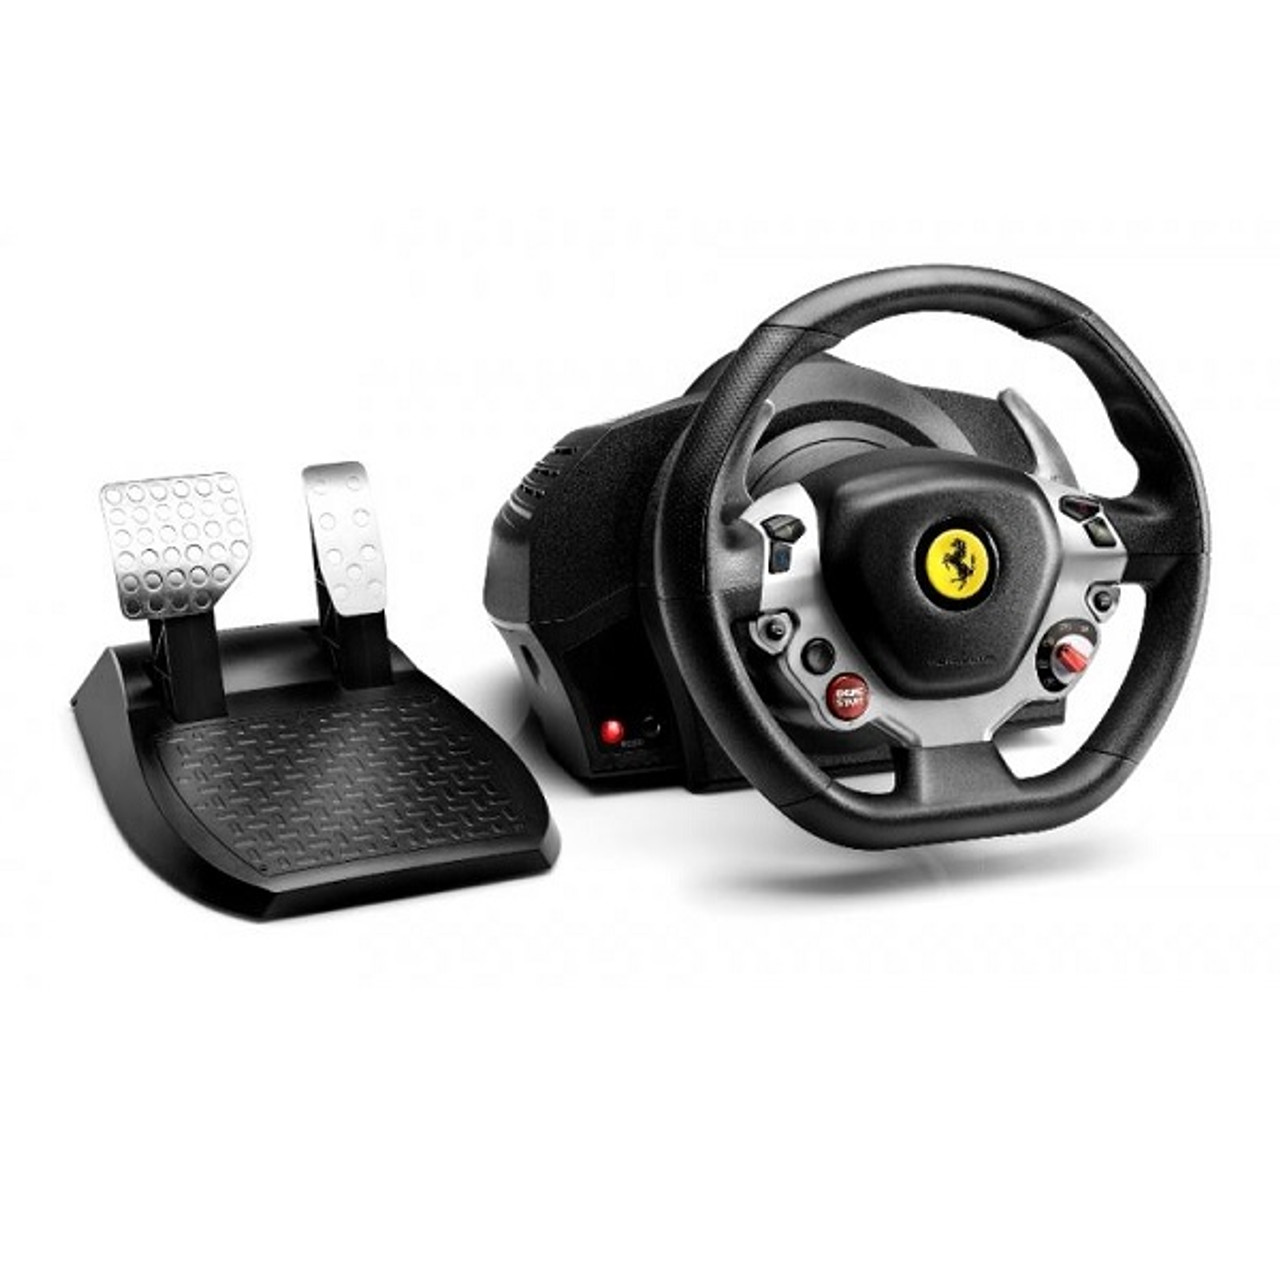 Product image for Thrustmaster TX Racing Wheel Ferrari 458 Italia Edition - Xbox One/PC   CX Computer Superstore